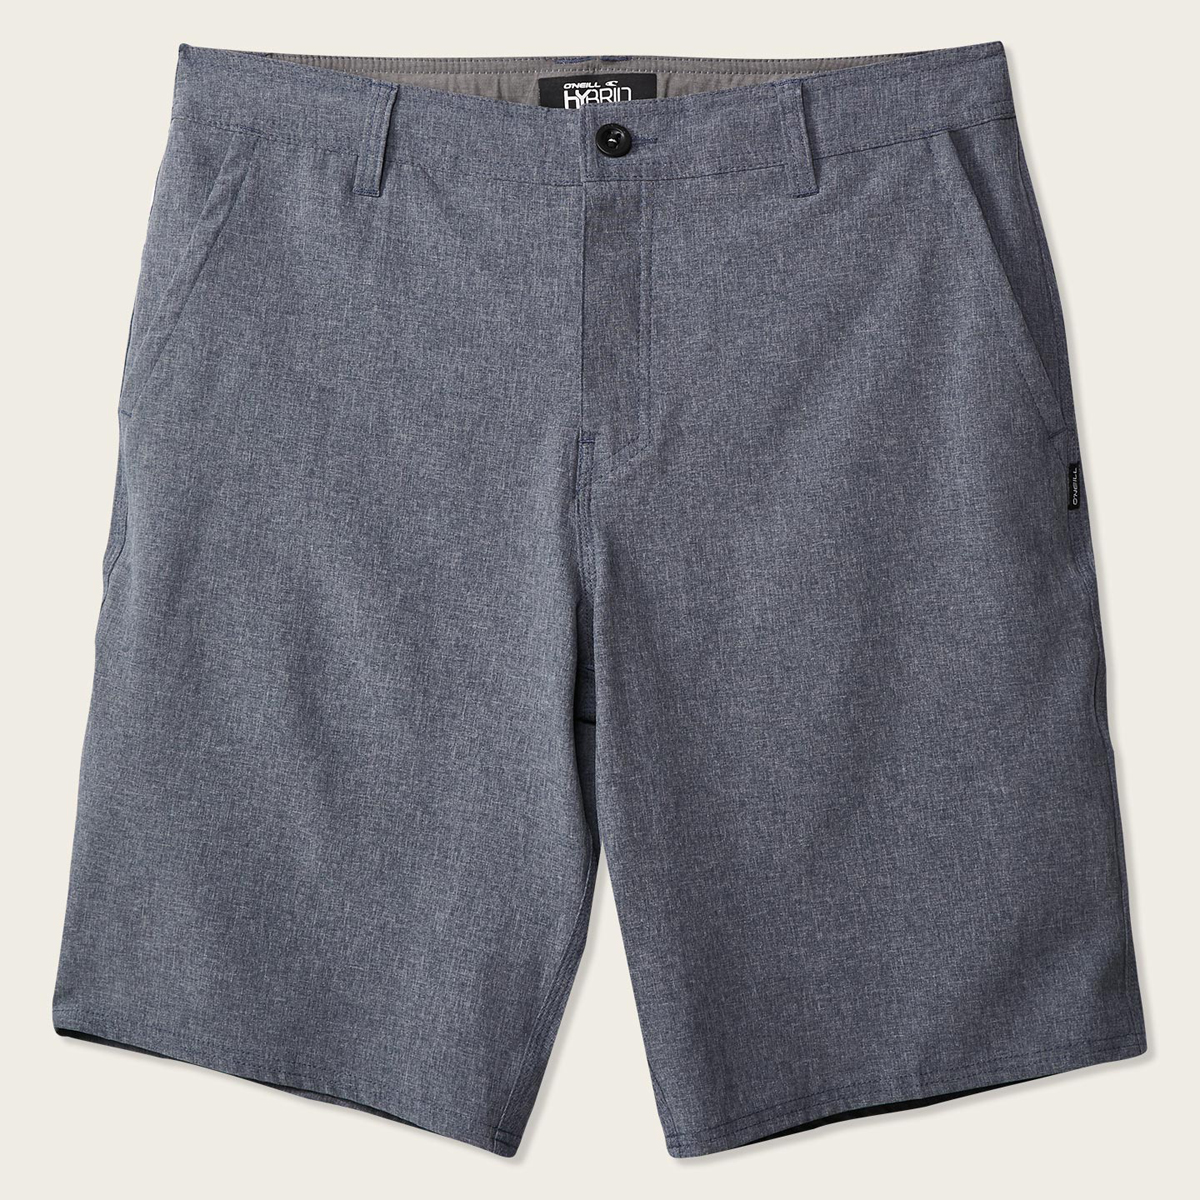 O'NEILL LOADED RESERVE HEATHER HYBRID SHORTS (SP918A001)